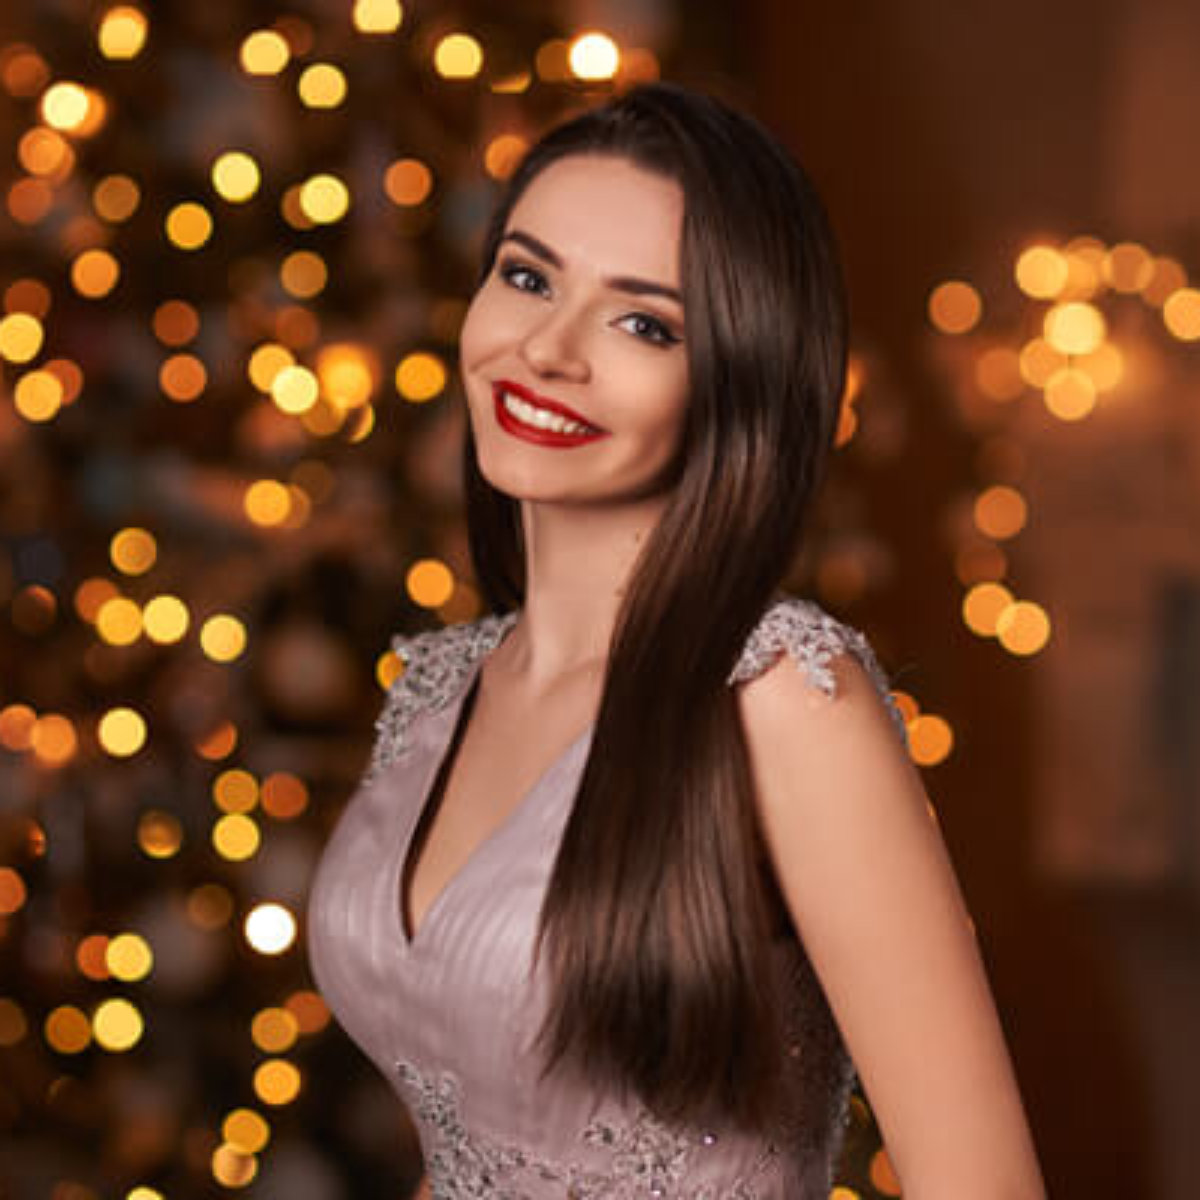 Women smiling by Christmas tree